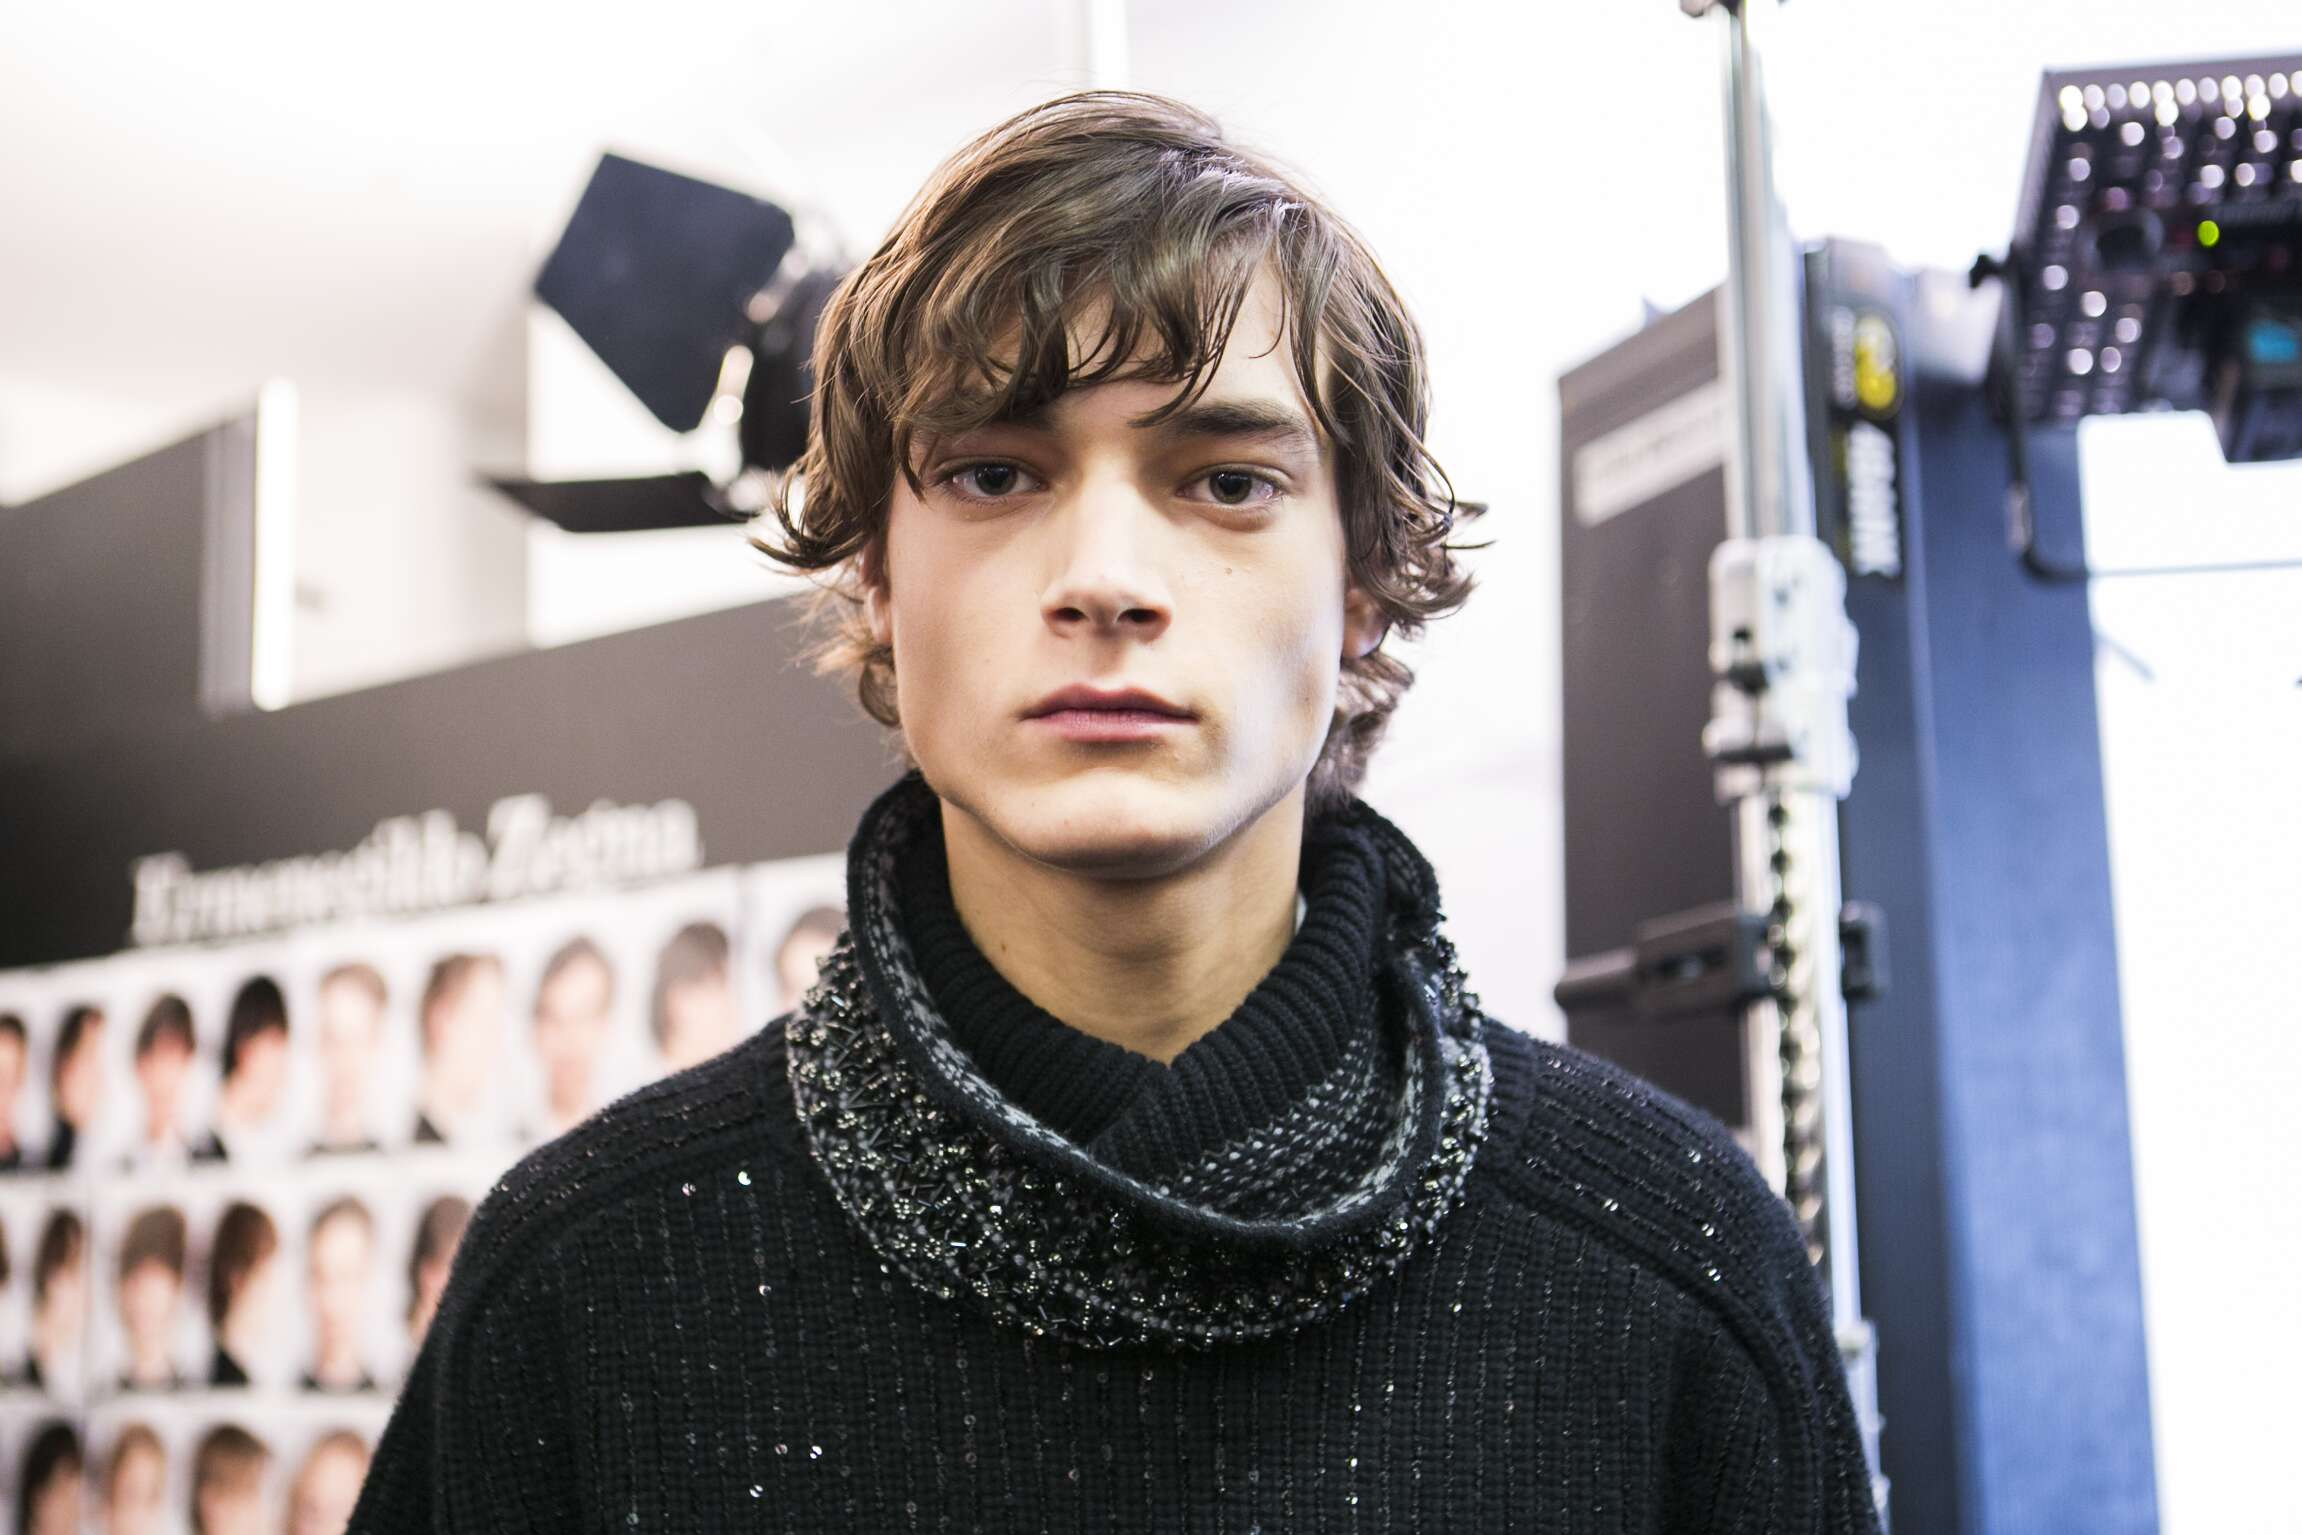 FW 2016 Ermenegildo Zegna Couture Backstage Fashion Model